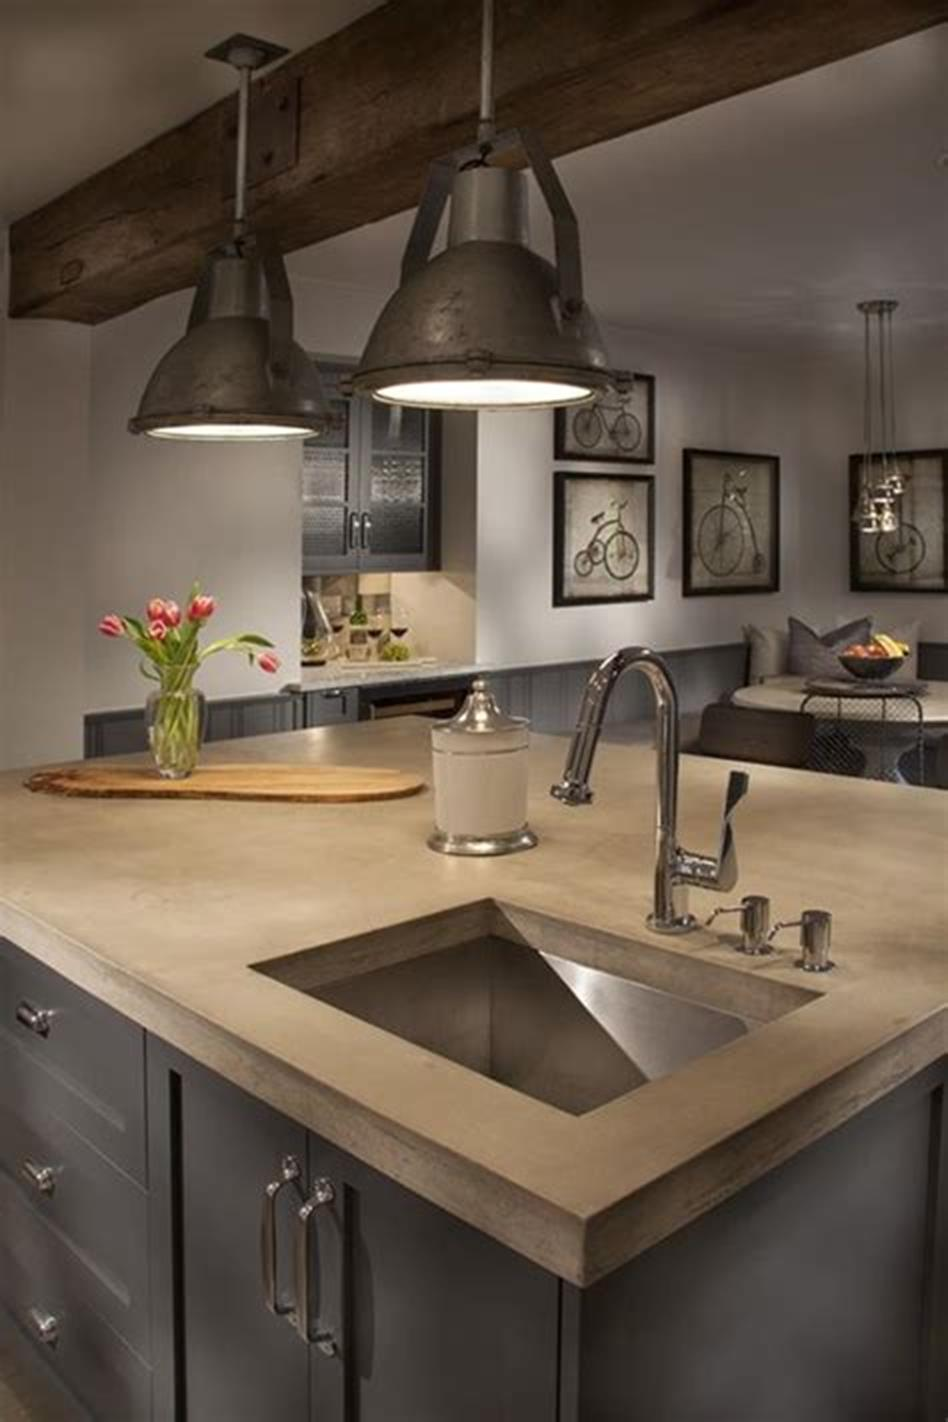 50 Inspiring Farmhouse Style Kitchen Lighting Fixtures Ideas 33